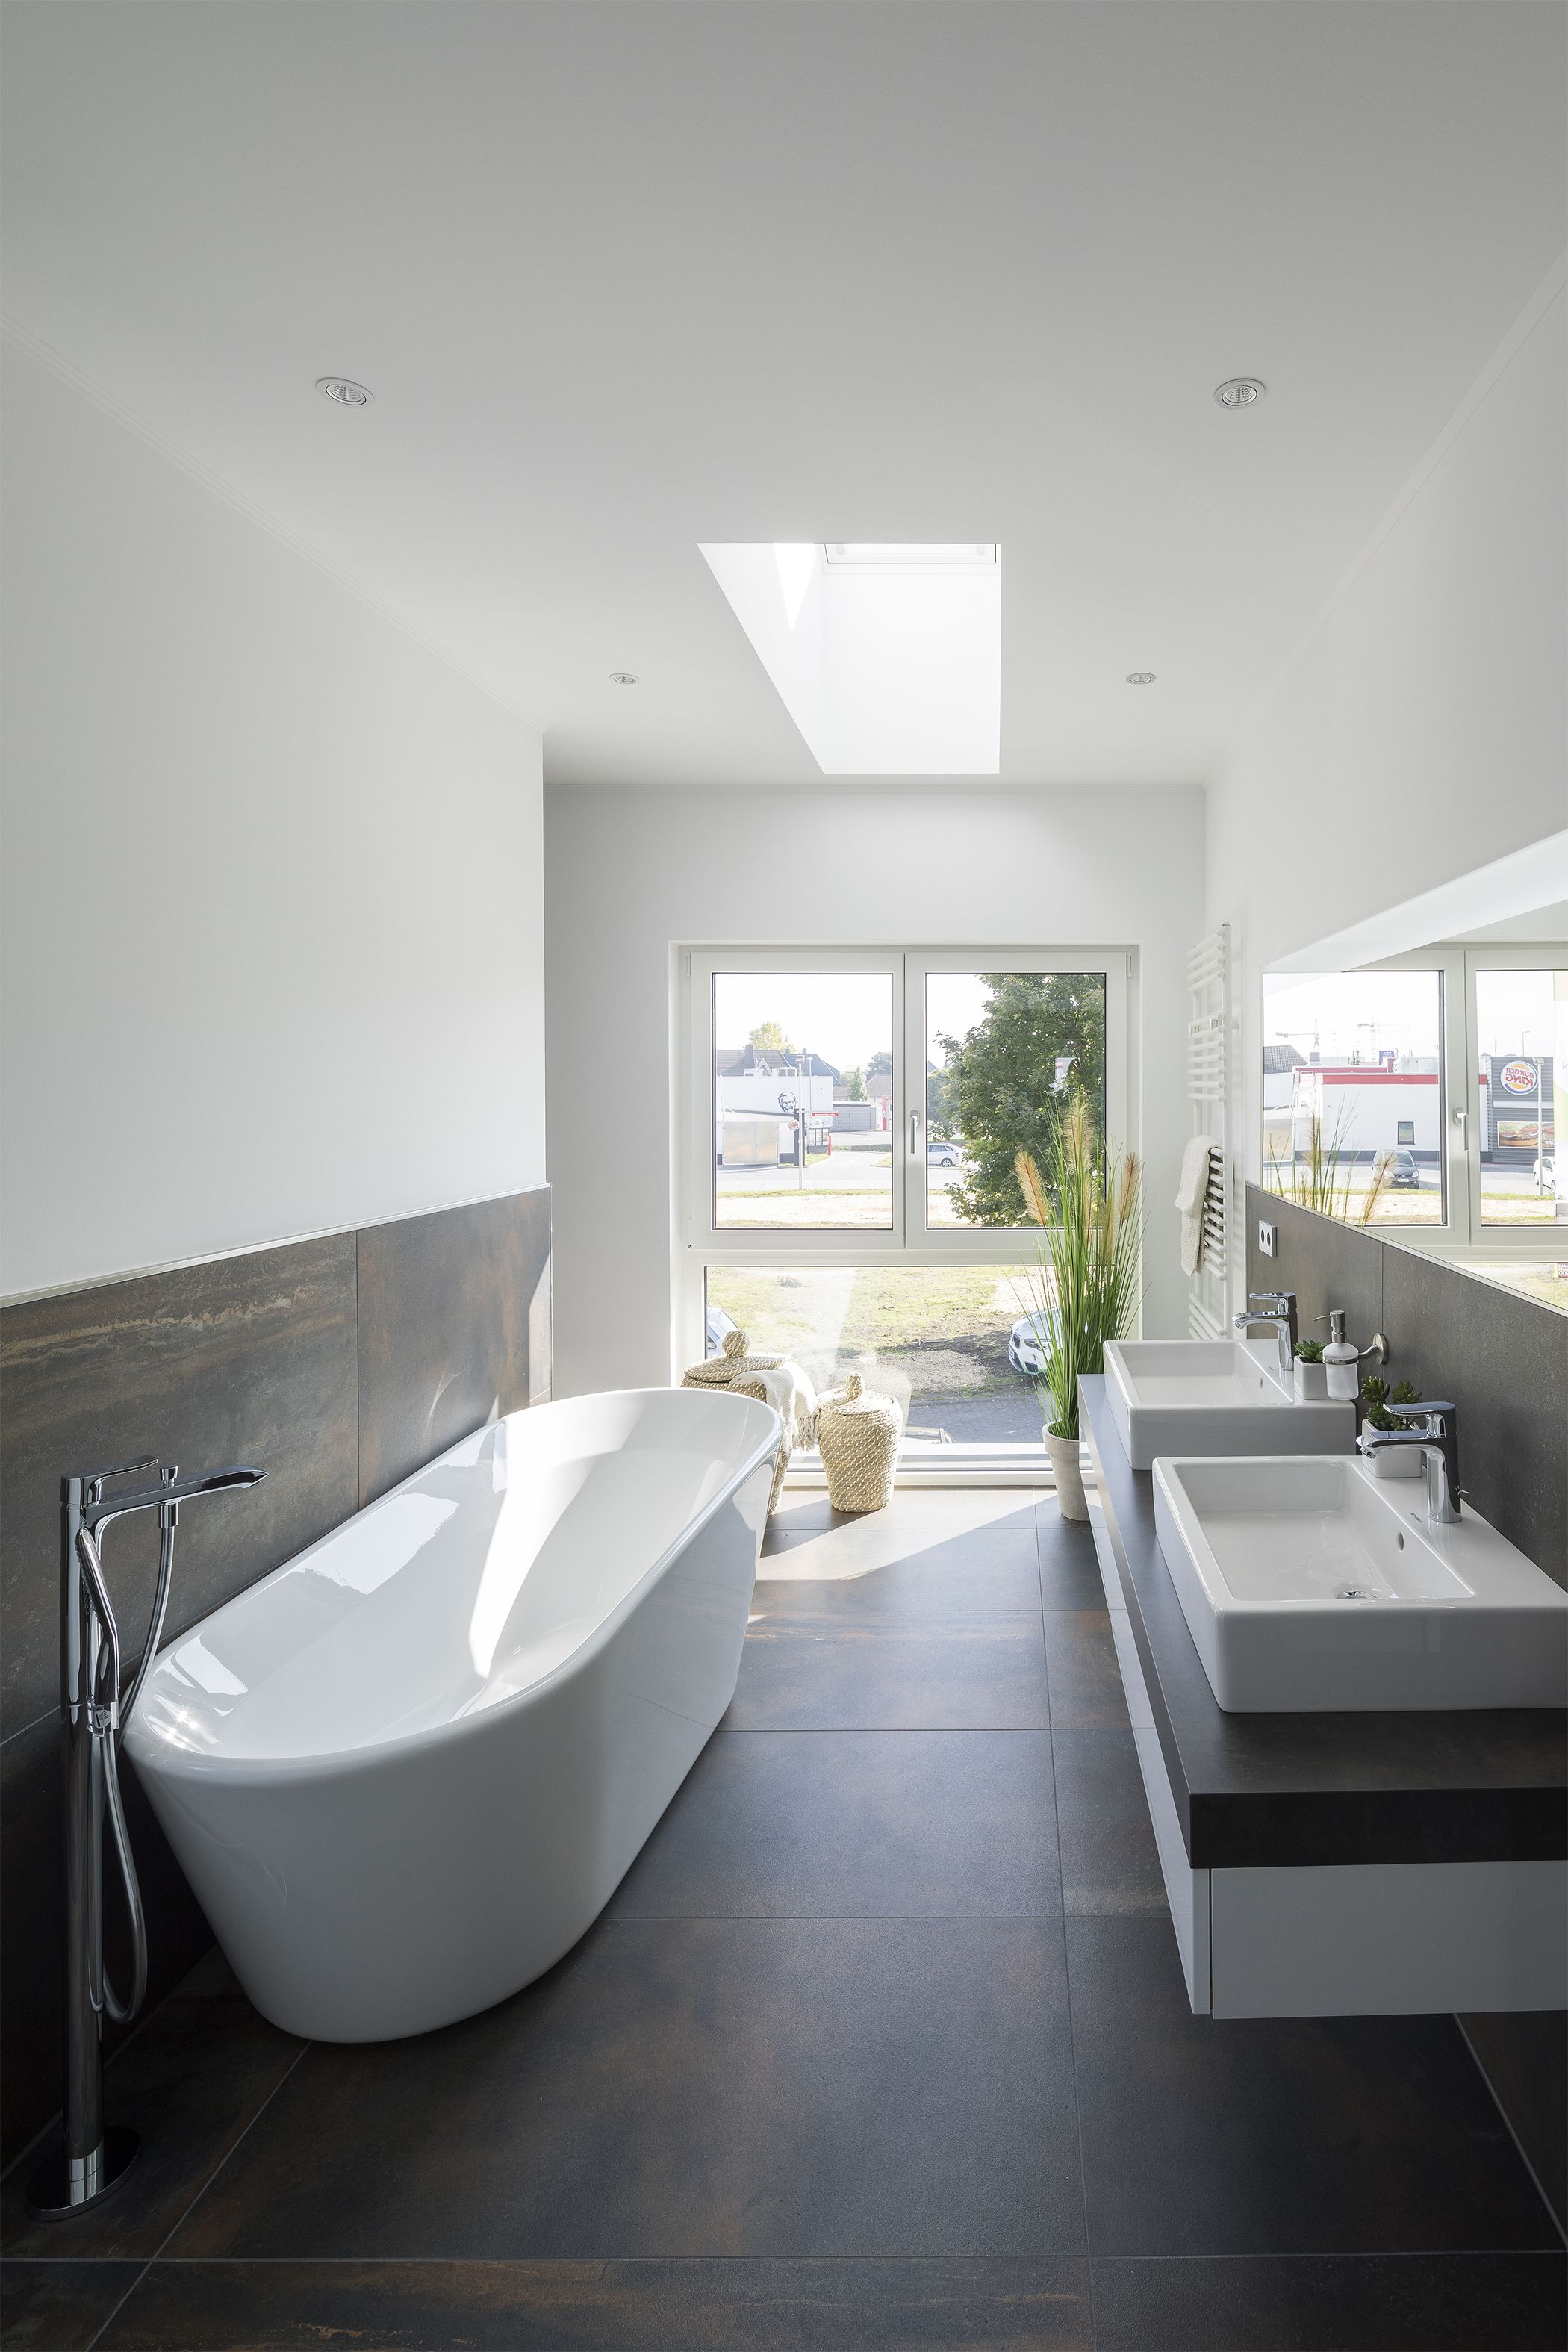 7 Stunning Home Extension Ideas: Stunning Home Extension With Roof Windows In The Bathroom. Bright White Bathroom With Roof